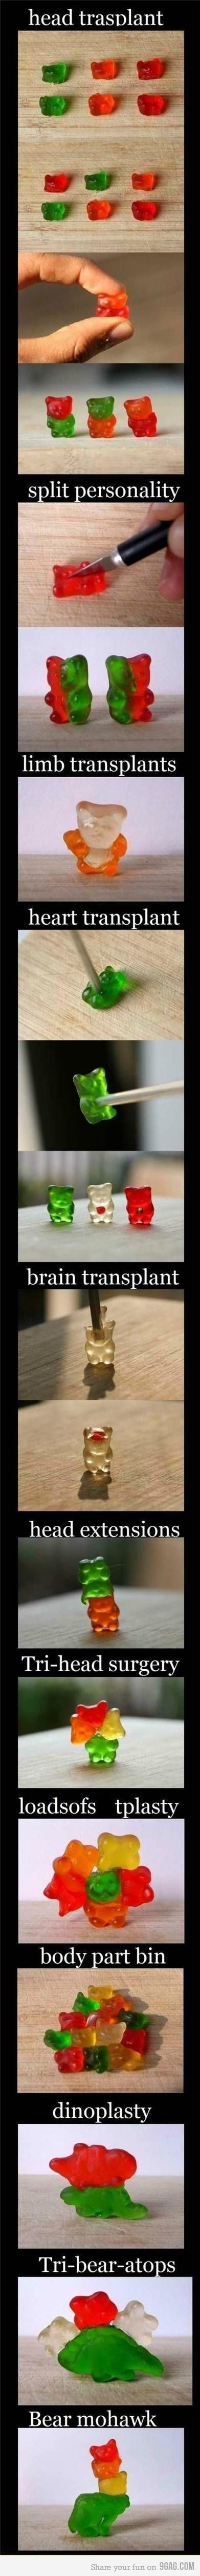 man... ive only done head transplants... i feel so inferior